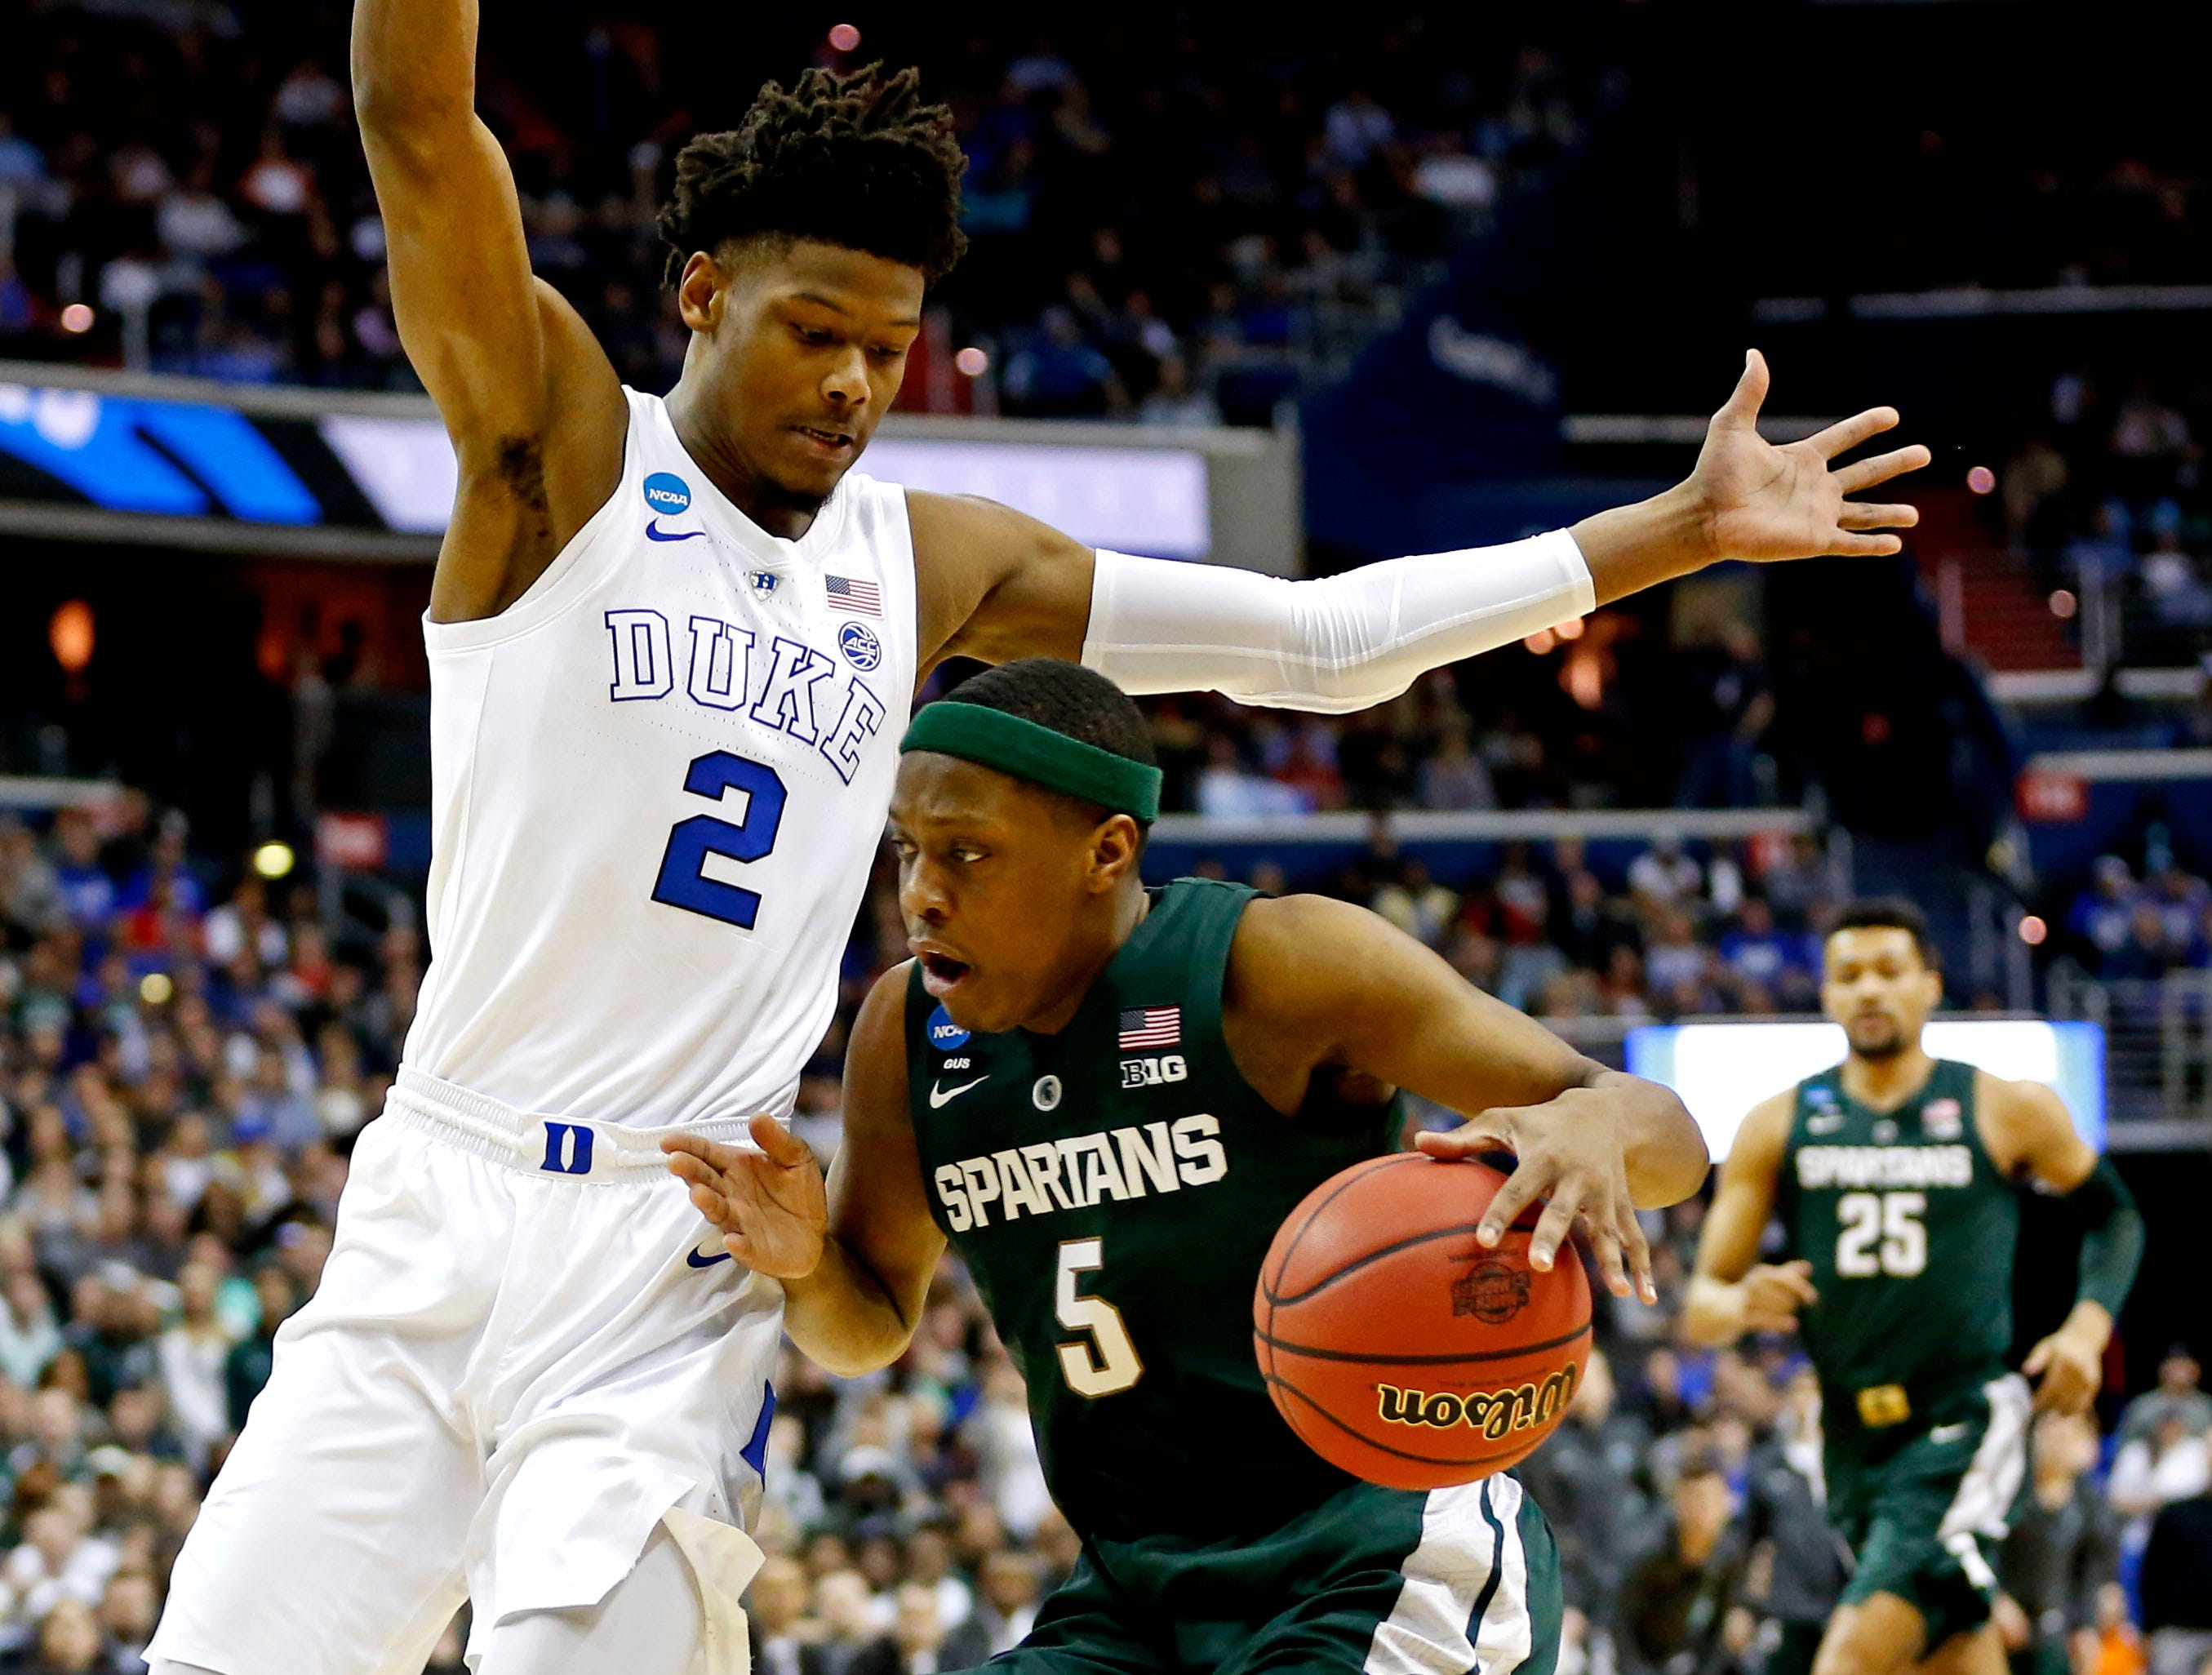 Mar 31, 2019; Washington, DC, USA; Michigan State Spartans guard Cassius Winston (5) drives to the basket against Duke Blue Devils forward Cam Reddish (2) during the first half in the championship game of the east regional of the 2019 NCAA Tournament at Capital One Arena. Mandatory Credit: Amber Searls-USA TODAY Sports